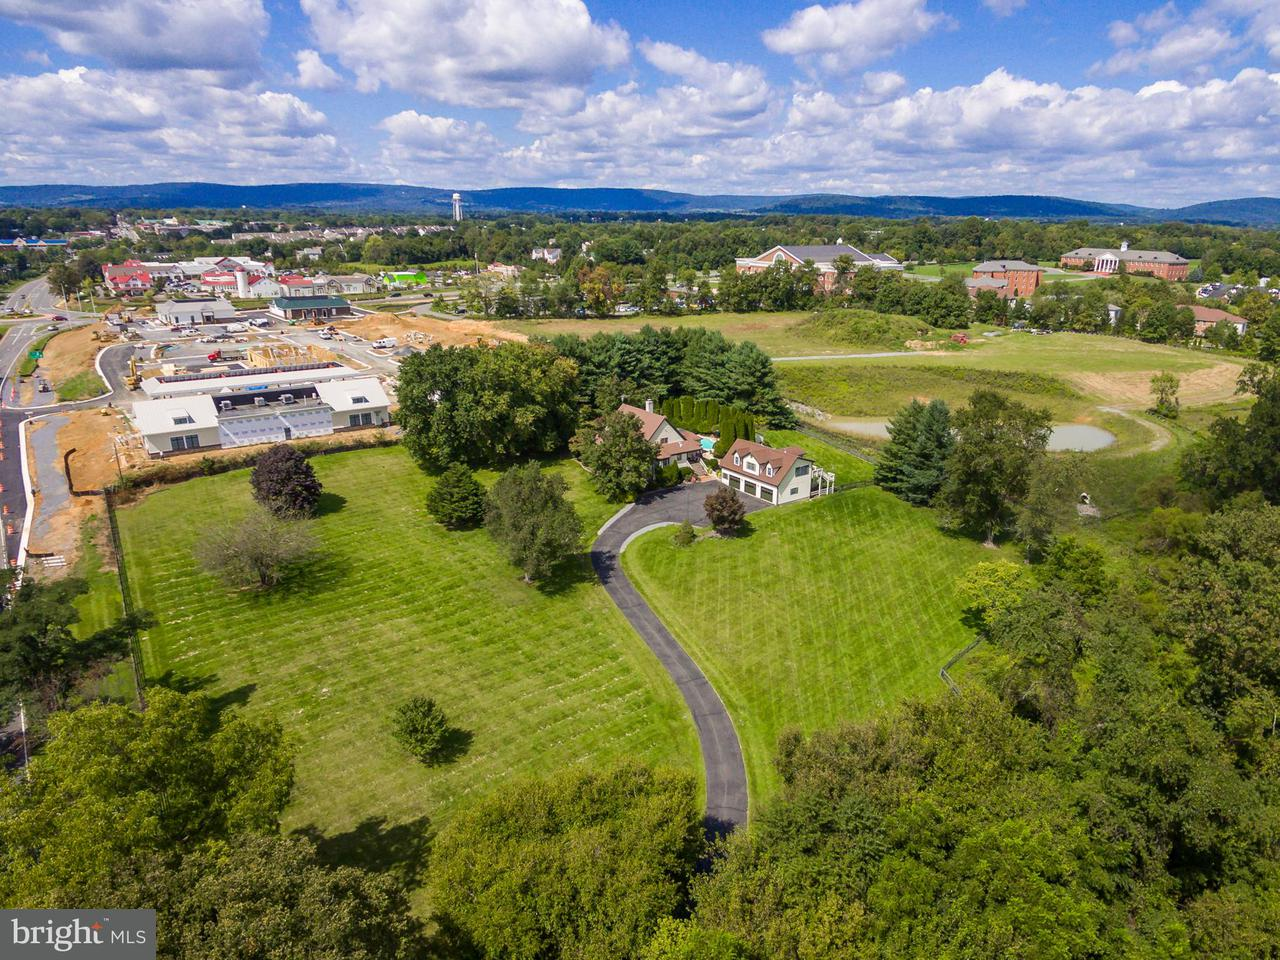 Land for Sale at 38038 COLONIAL HWY 38038 COLONIAL HWY Hamilton, Virginia 20158 United States